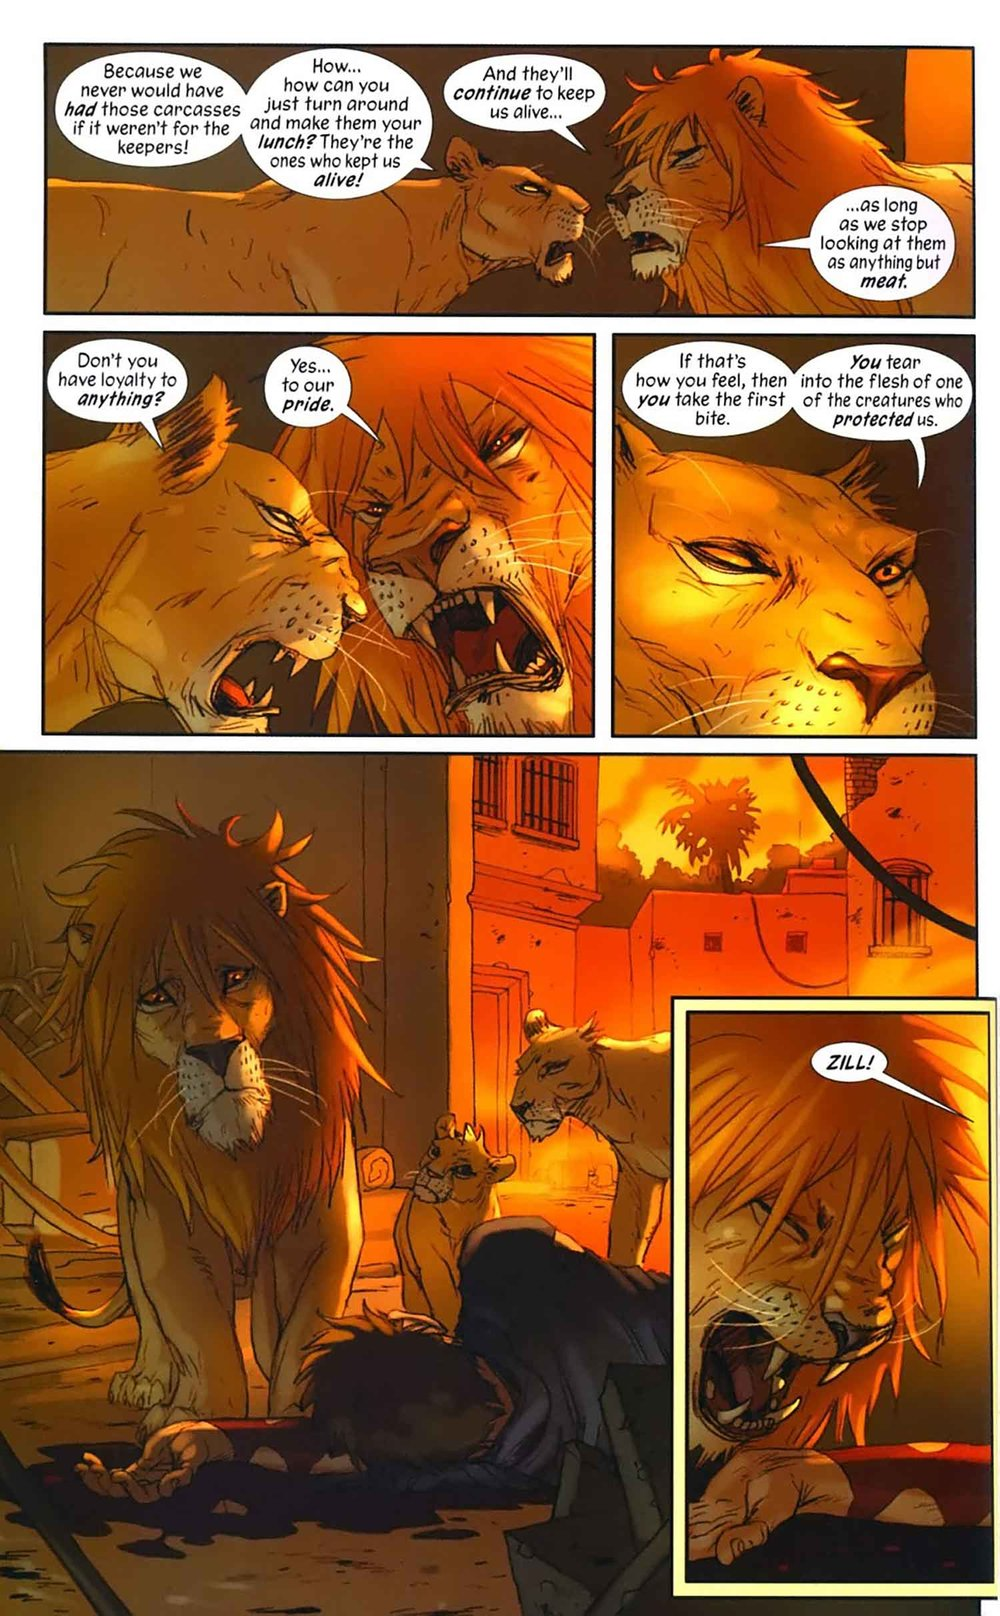 Frame from the graphic novel Pride of Baghdad by Brian K. Vaughan and Niko Henrichon